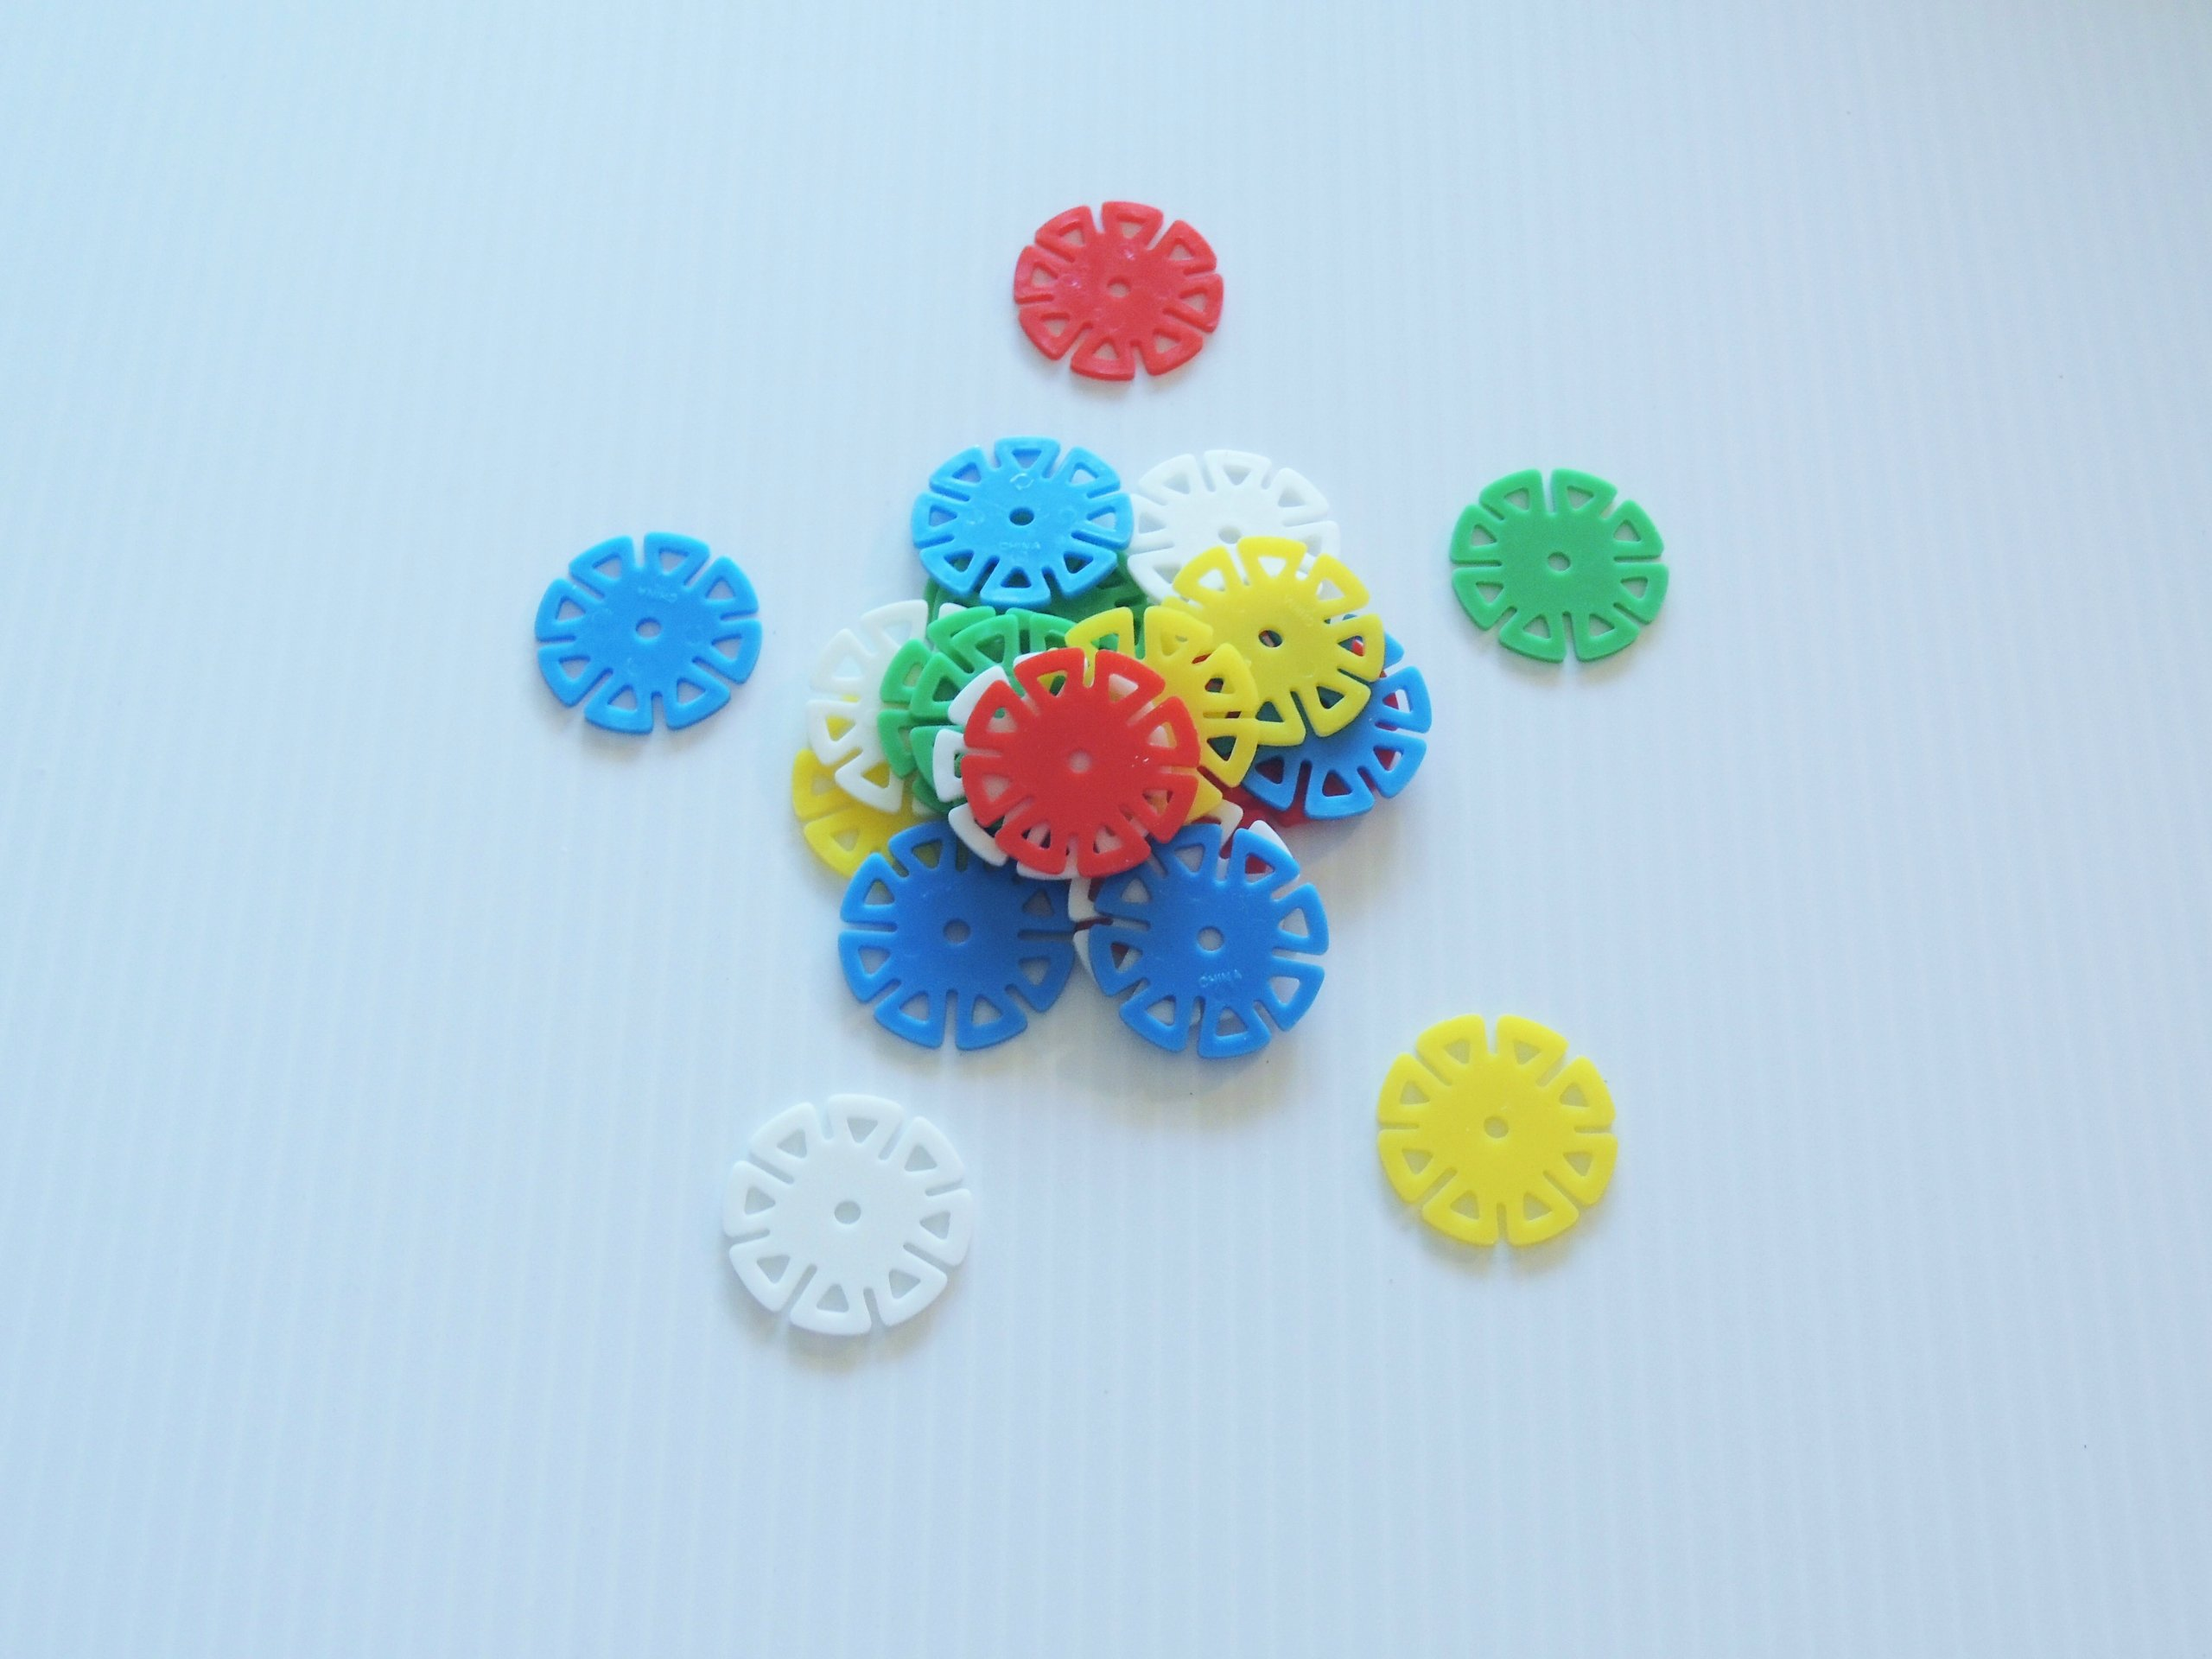 Small Spin Wheels Bird Toy Parts Parrots Crafts 250 Pieces 1.5'' Round